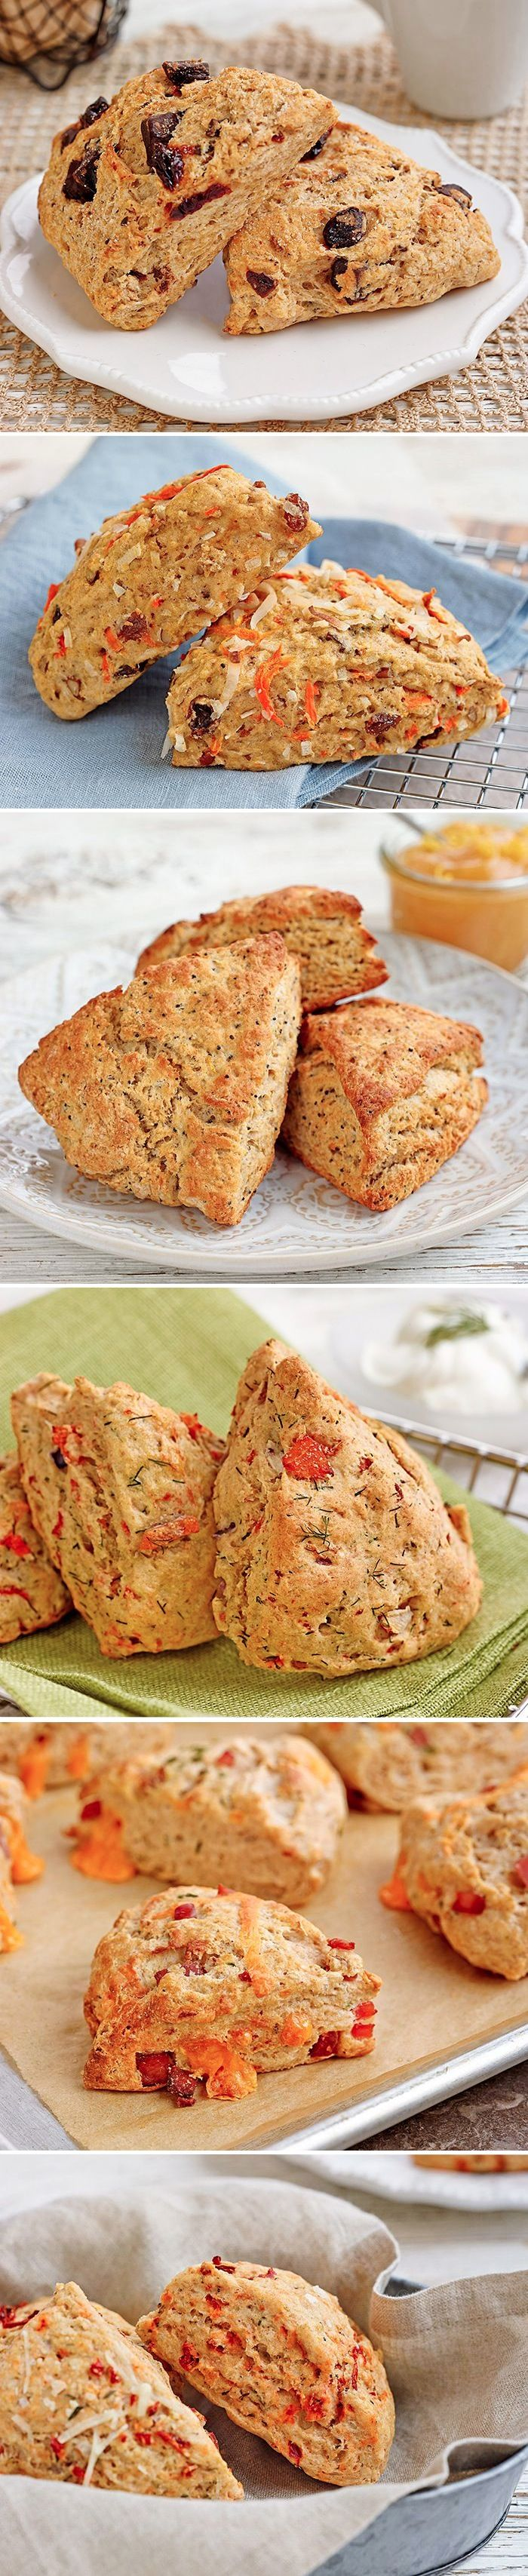 6 Sweet & Savory Scone Recipes for Lazy Weekend Brunches: These healthy scones have whole-wheat flour and just enough butter to give them great flavor, along with sweet or savory ingredients to make each variation special. The result? The easiest, healthiest and most delicious scones you've ever had!